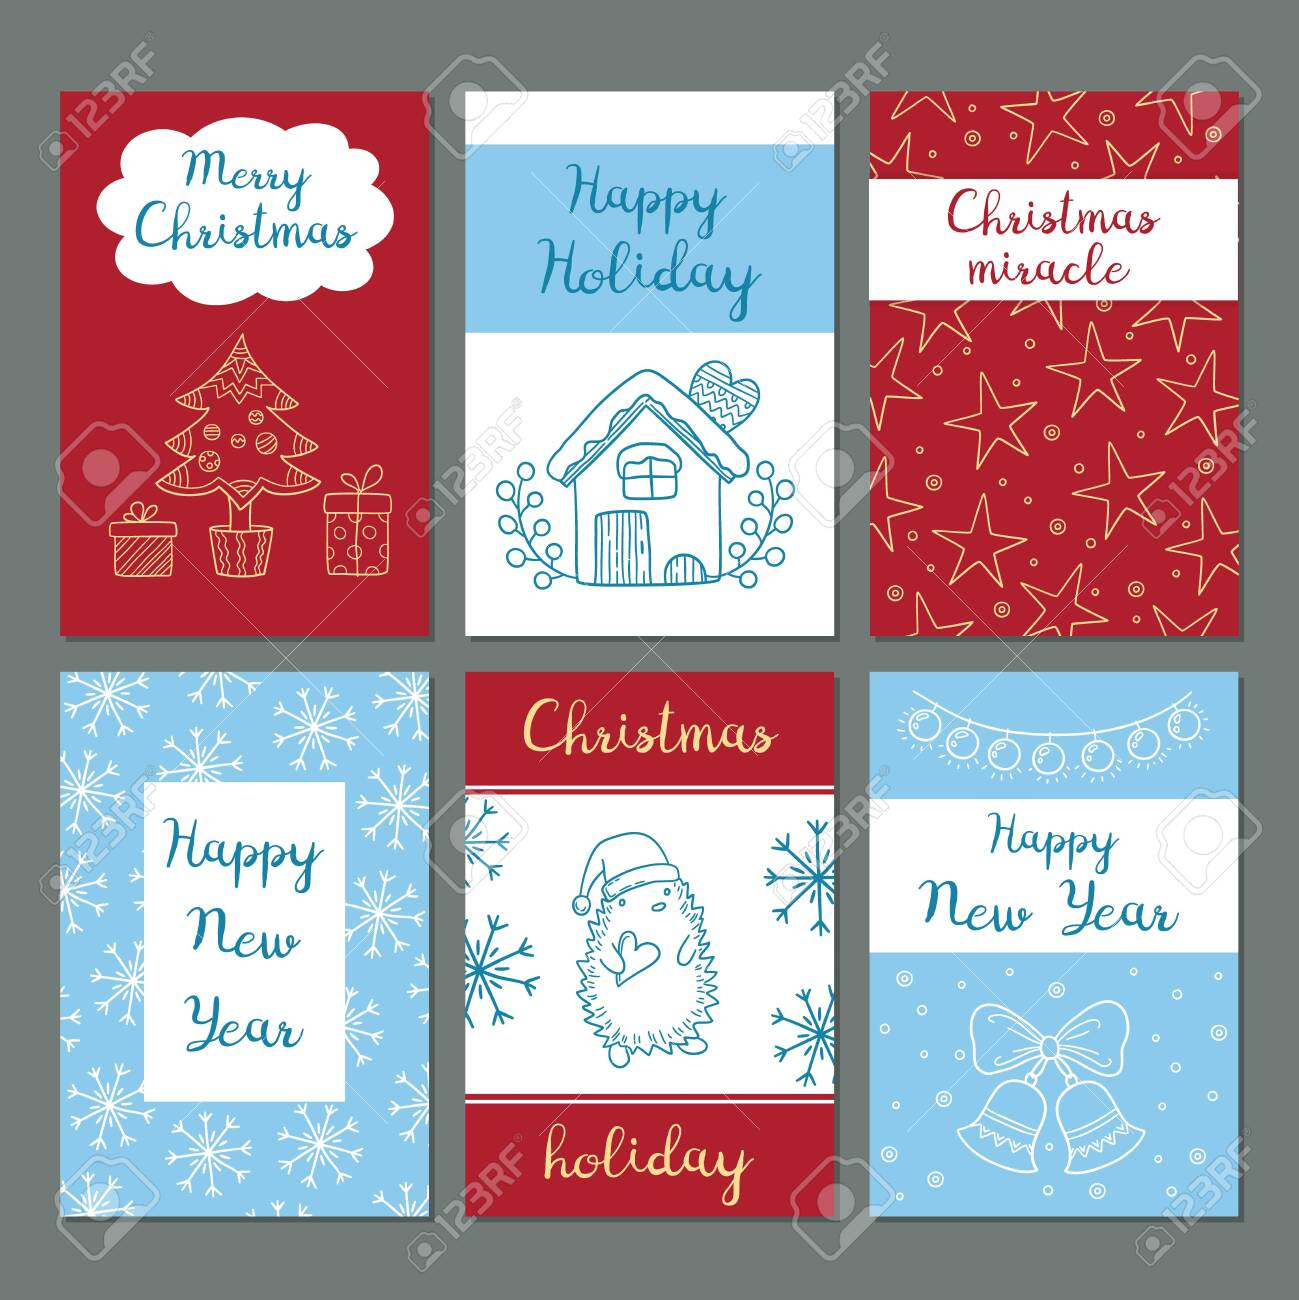 Christmas cards. Winter celebration greetings cards cute images snowflakes characters santa gifts clothes vector doodles hipster style. Winter christmas card with gift and greeting illustration - 134235911